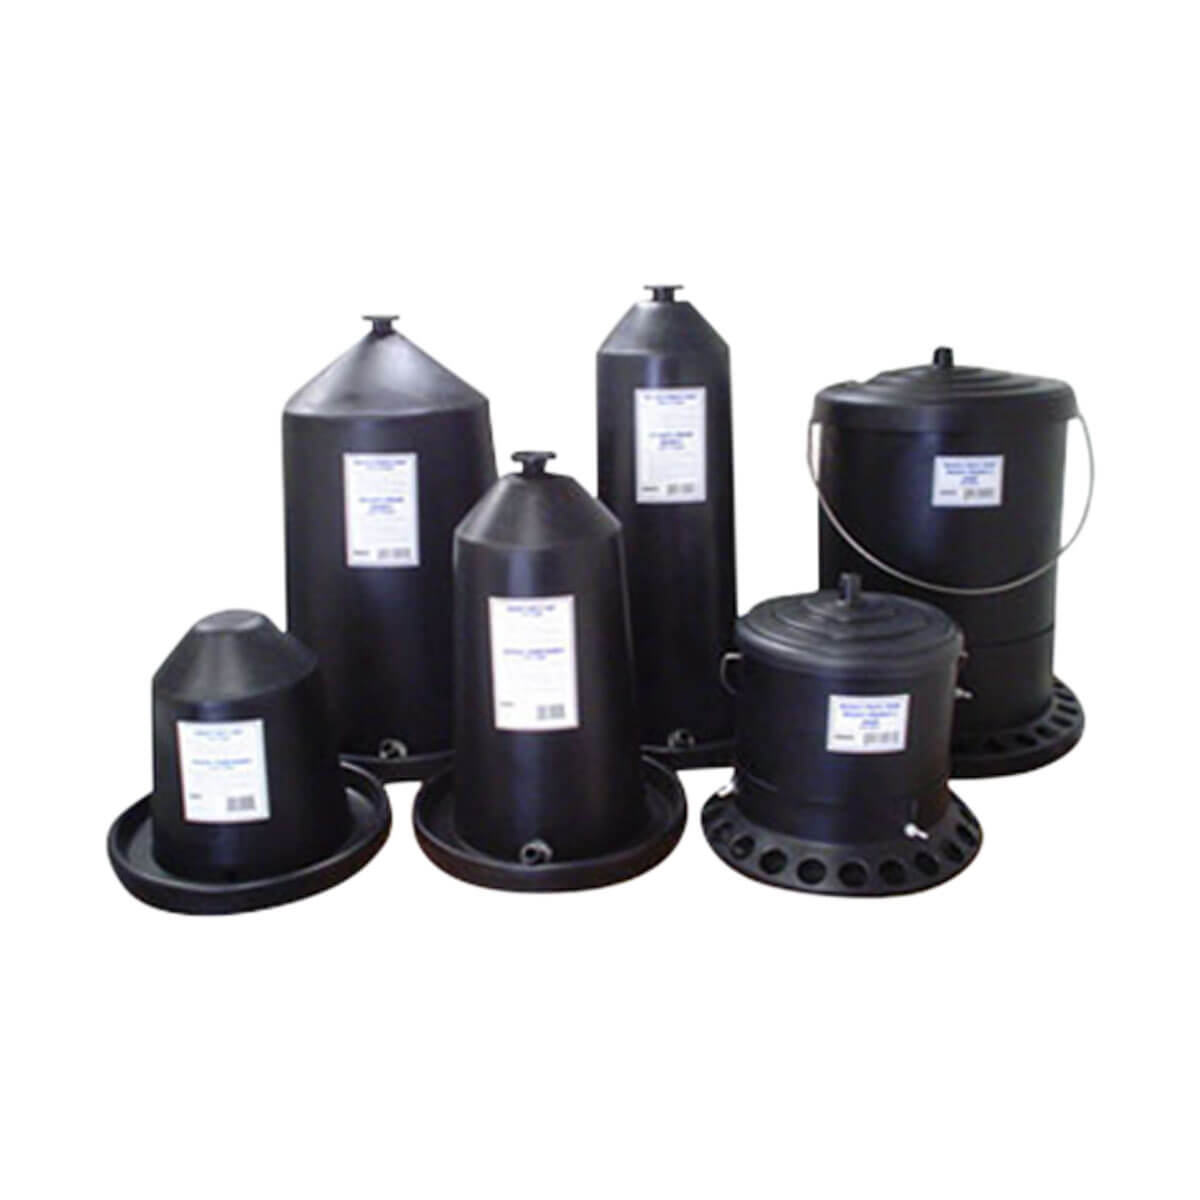 6 Gal. Poultry Waterer